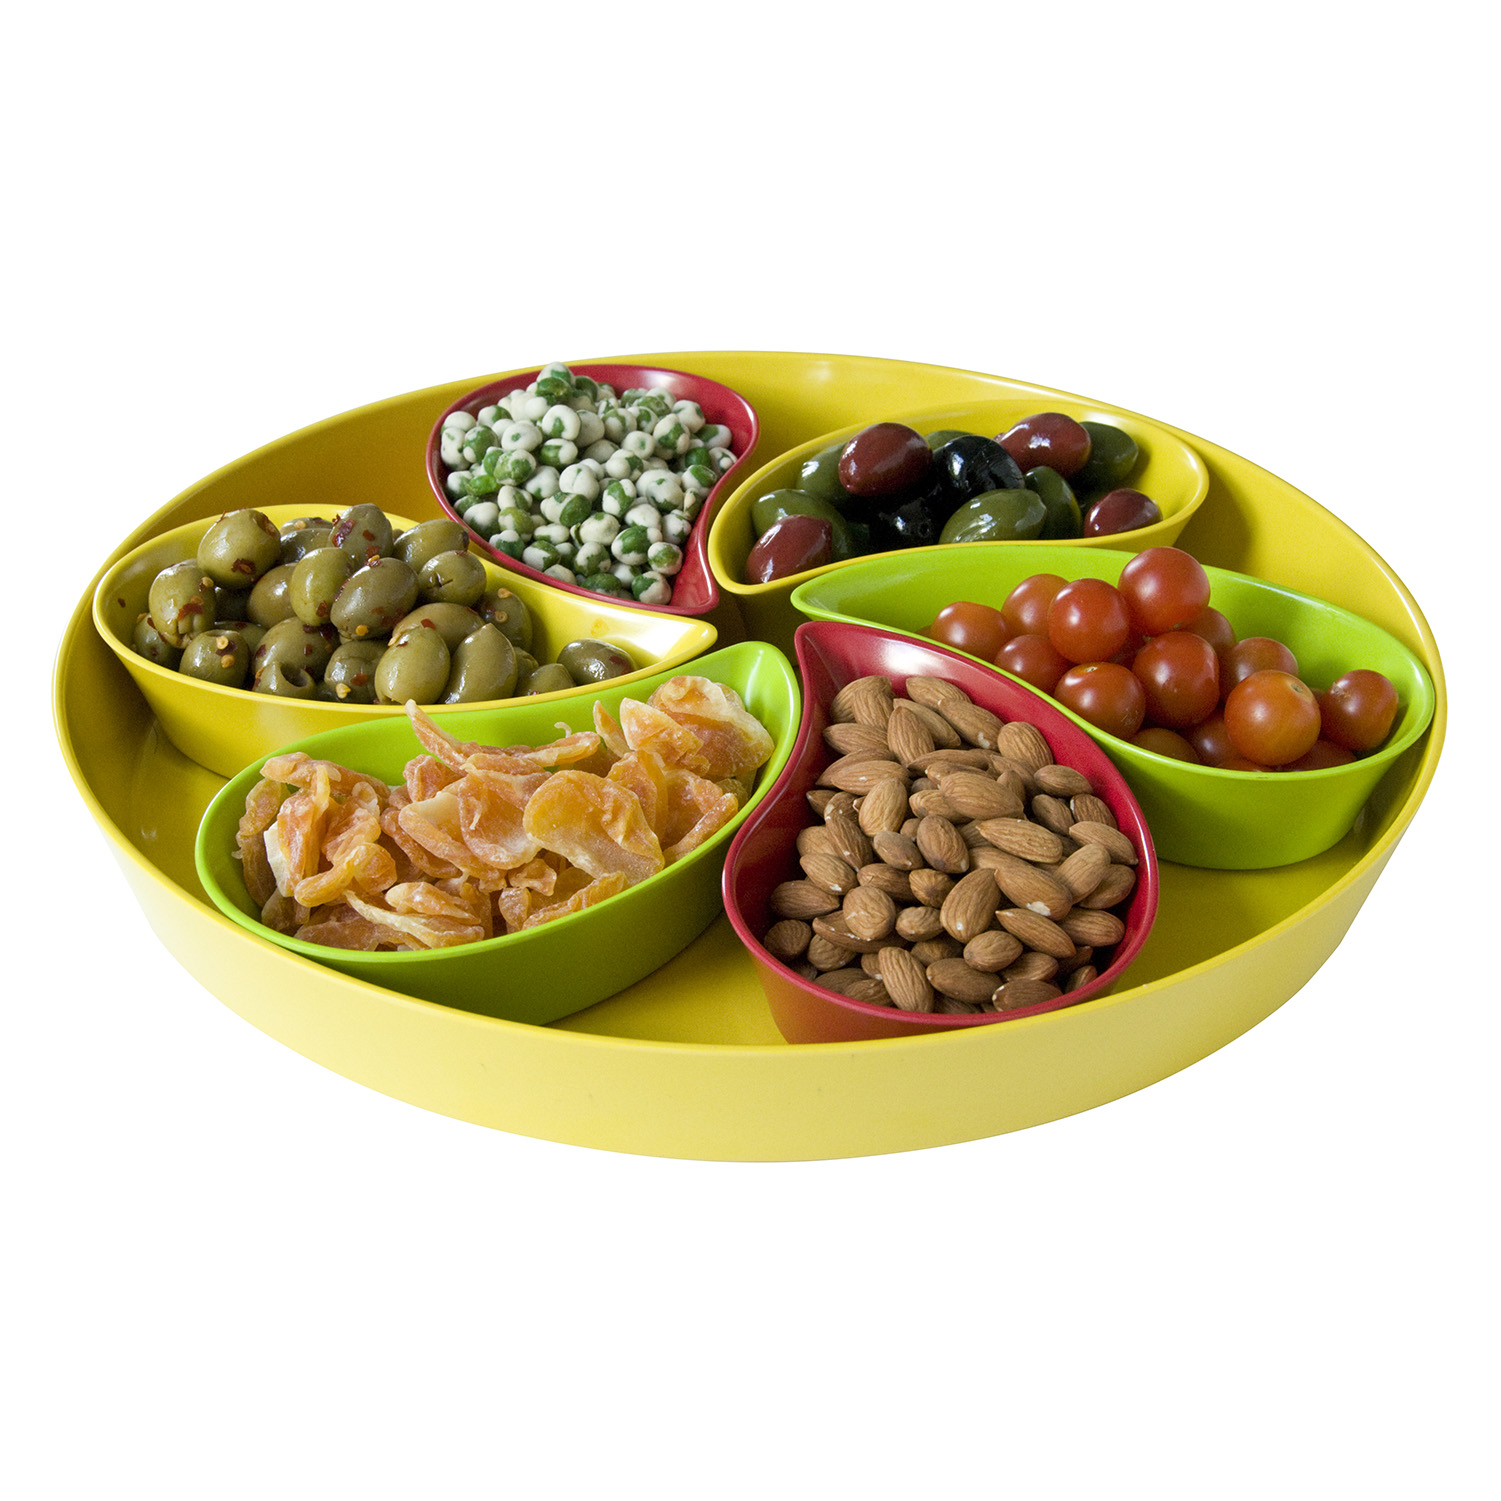 yumi-476-nature-natural-bamboo-serving-tray-with-6-teardrop-dishes with food.jpg